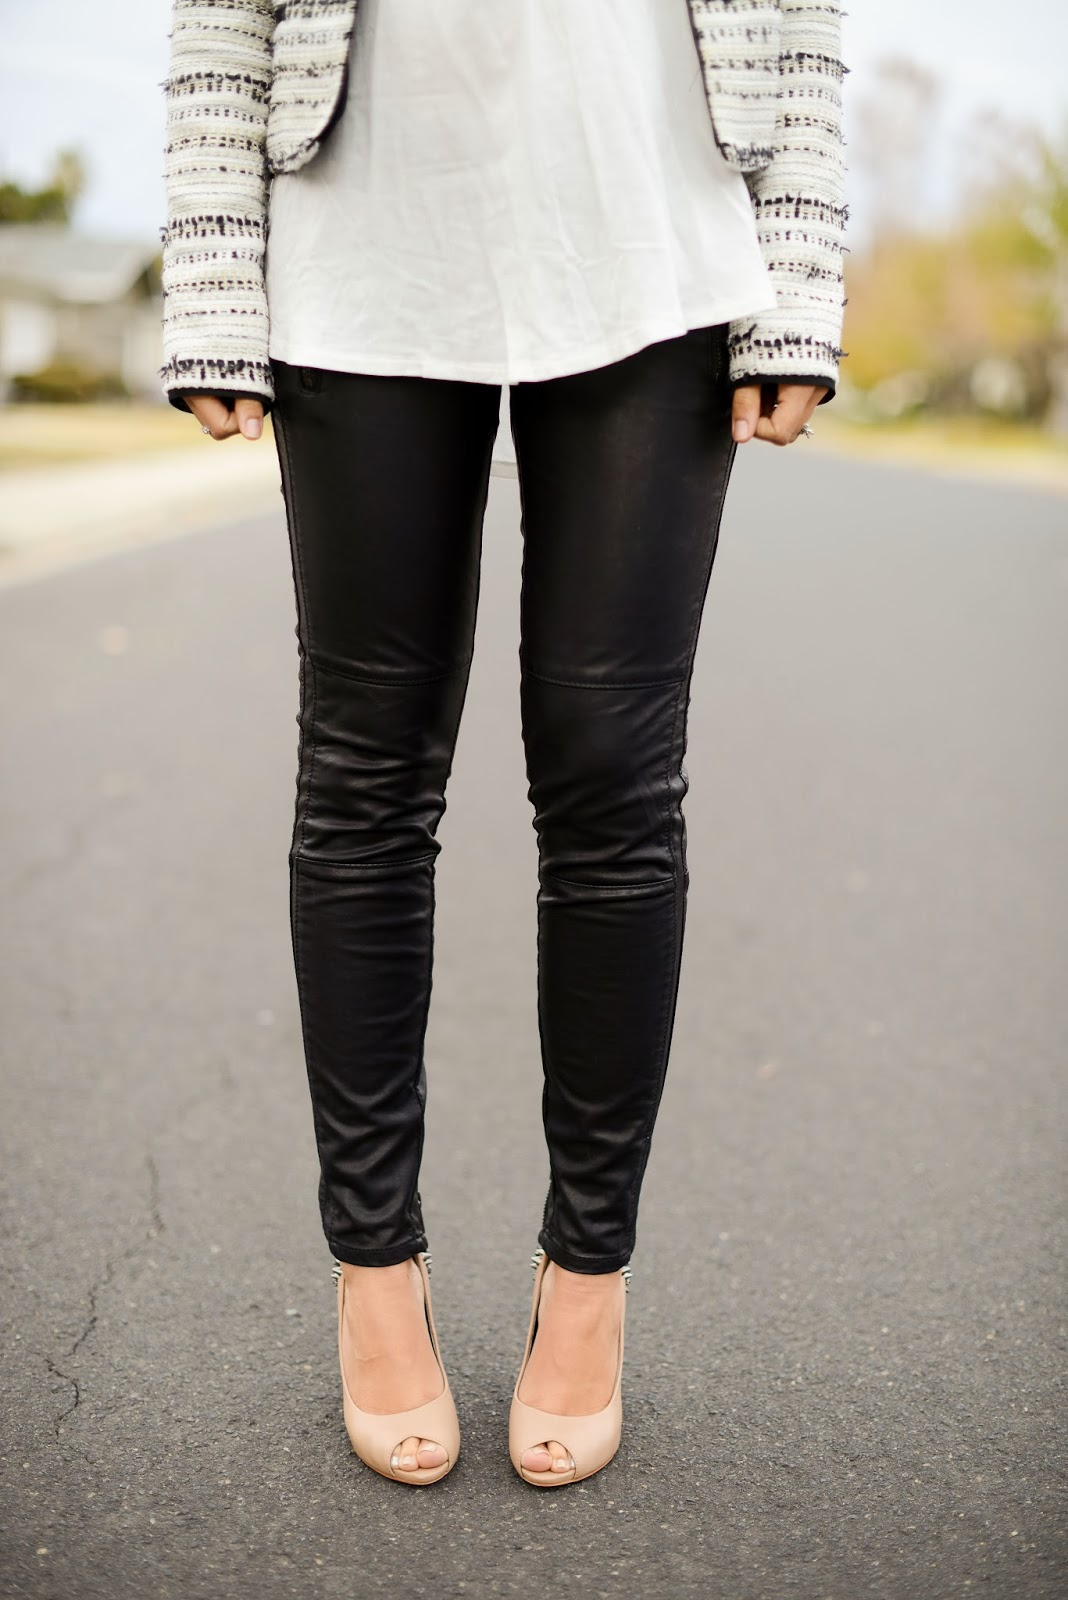 Dating leather pants